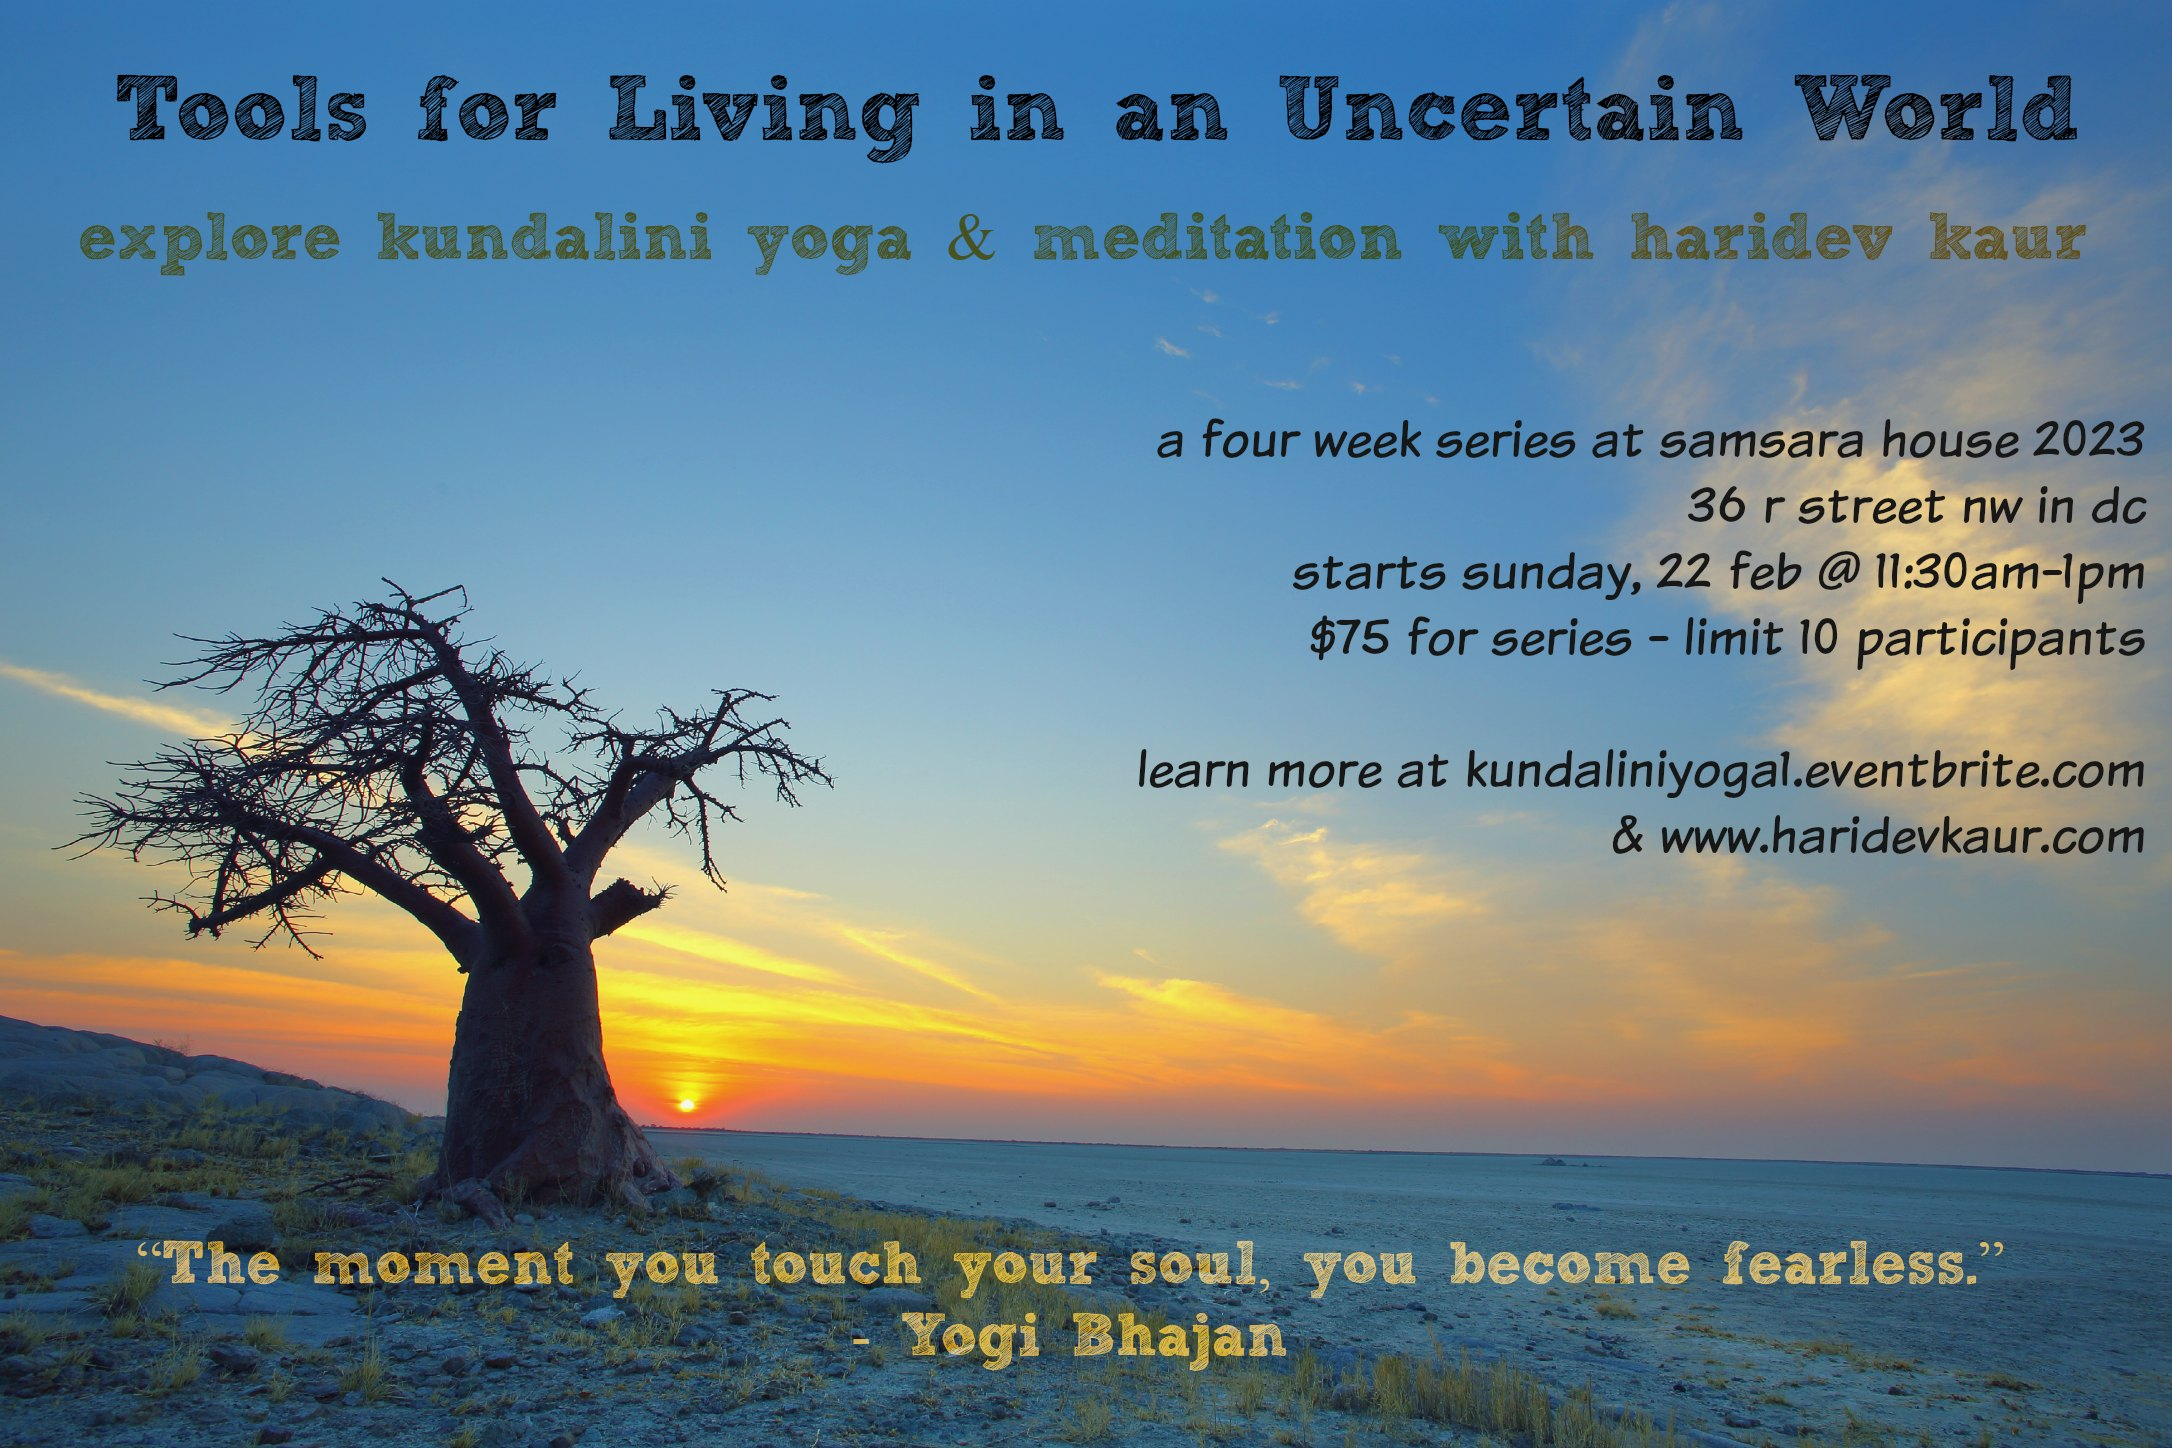 Tools for Thriving in an Uncertain World – A 4 week series of Kundalini Yoga and Meditation